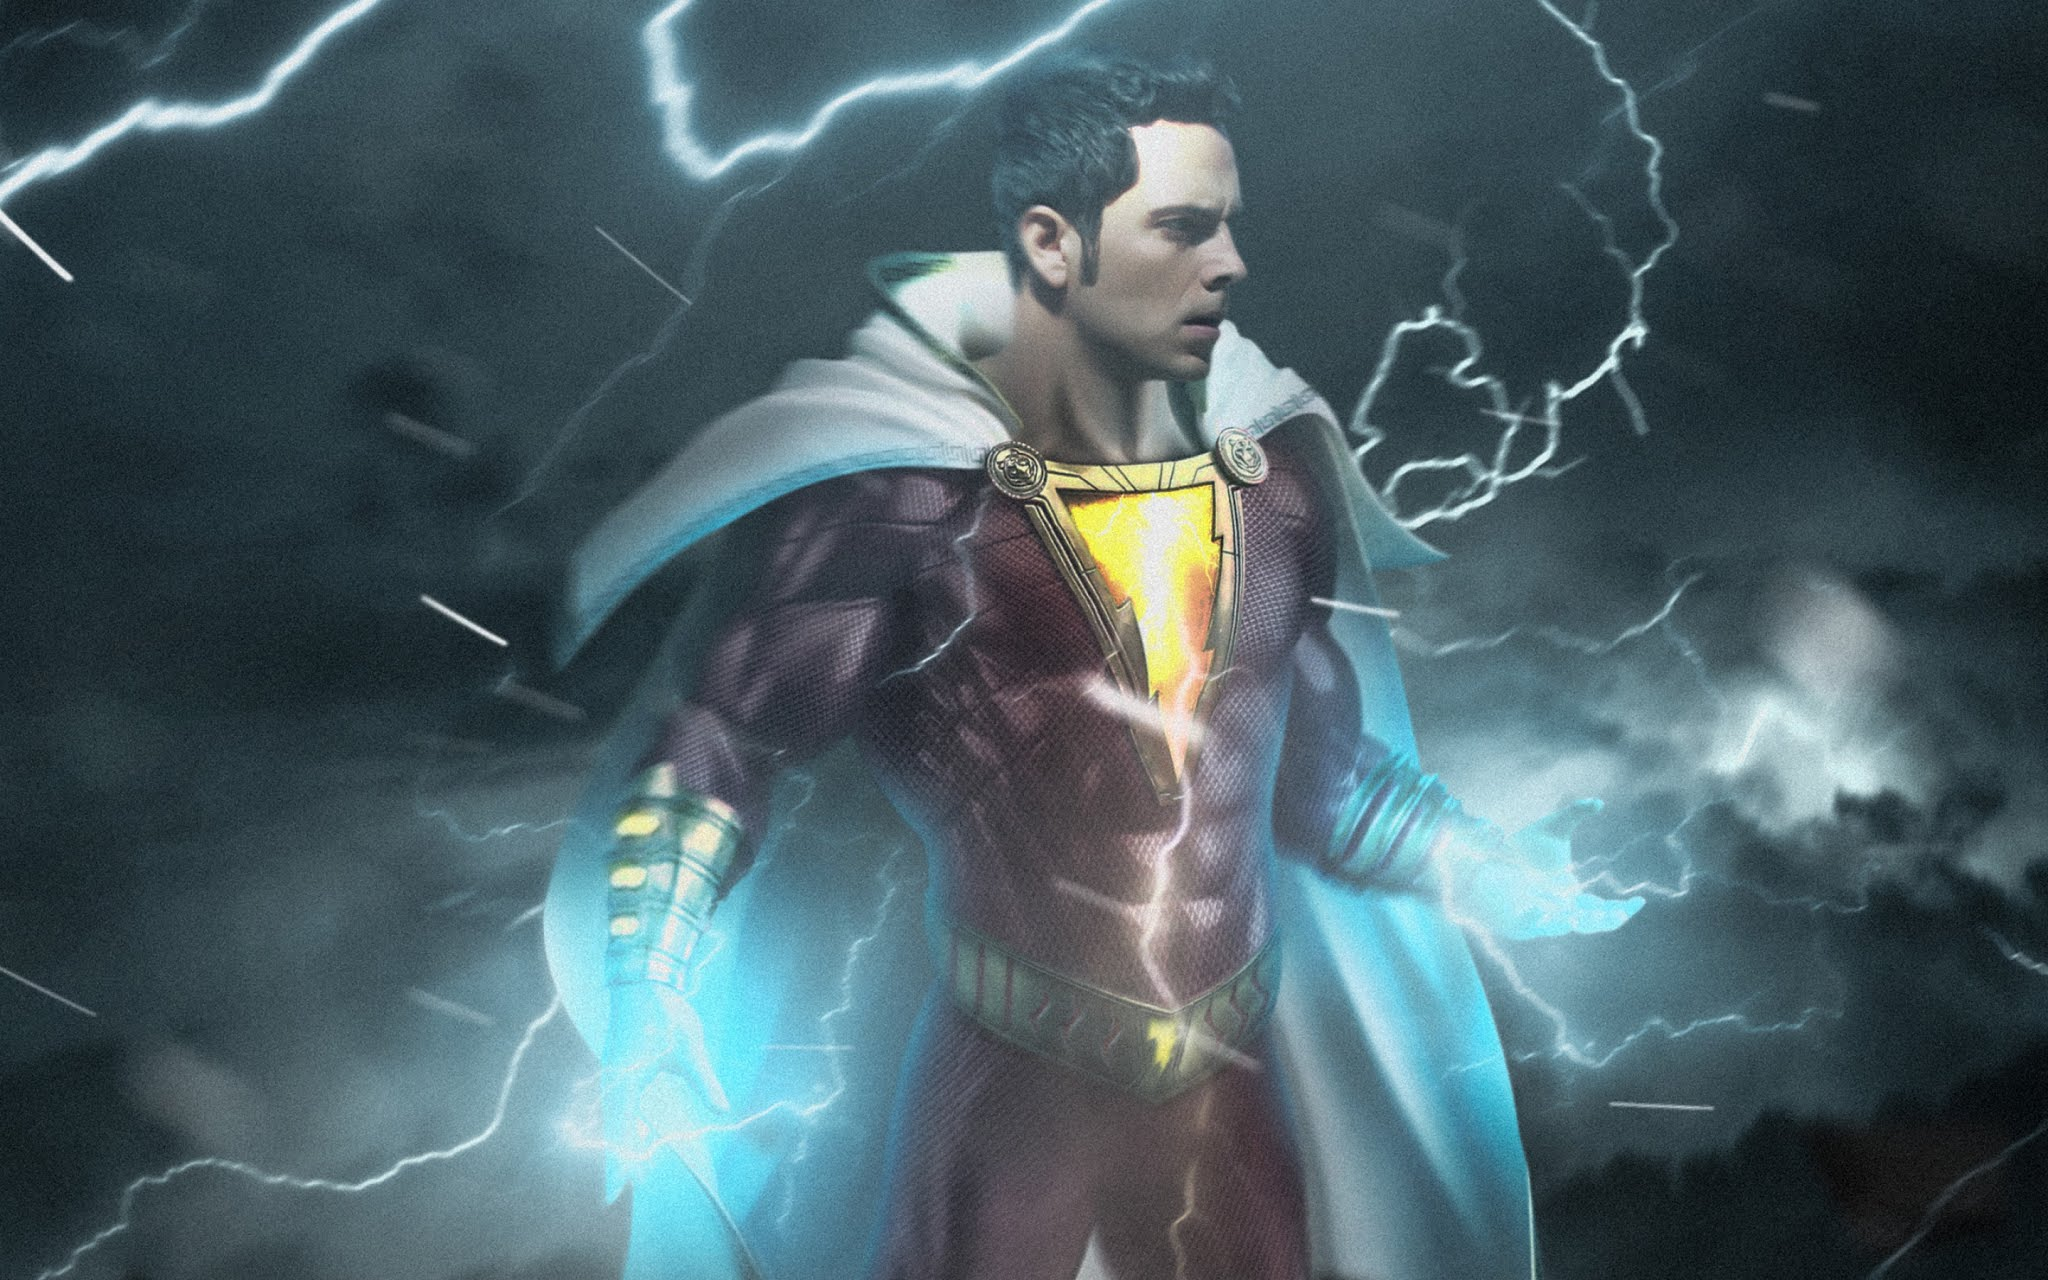 2048x1280 - Shazam! Wallpapers 10